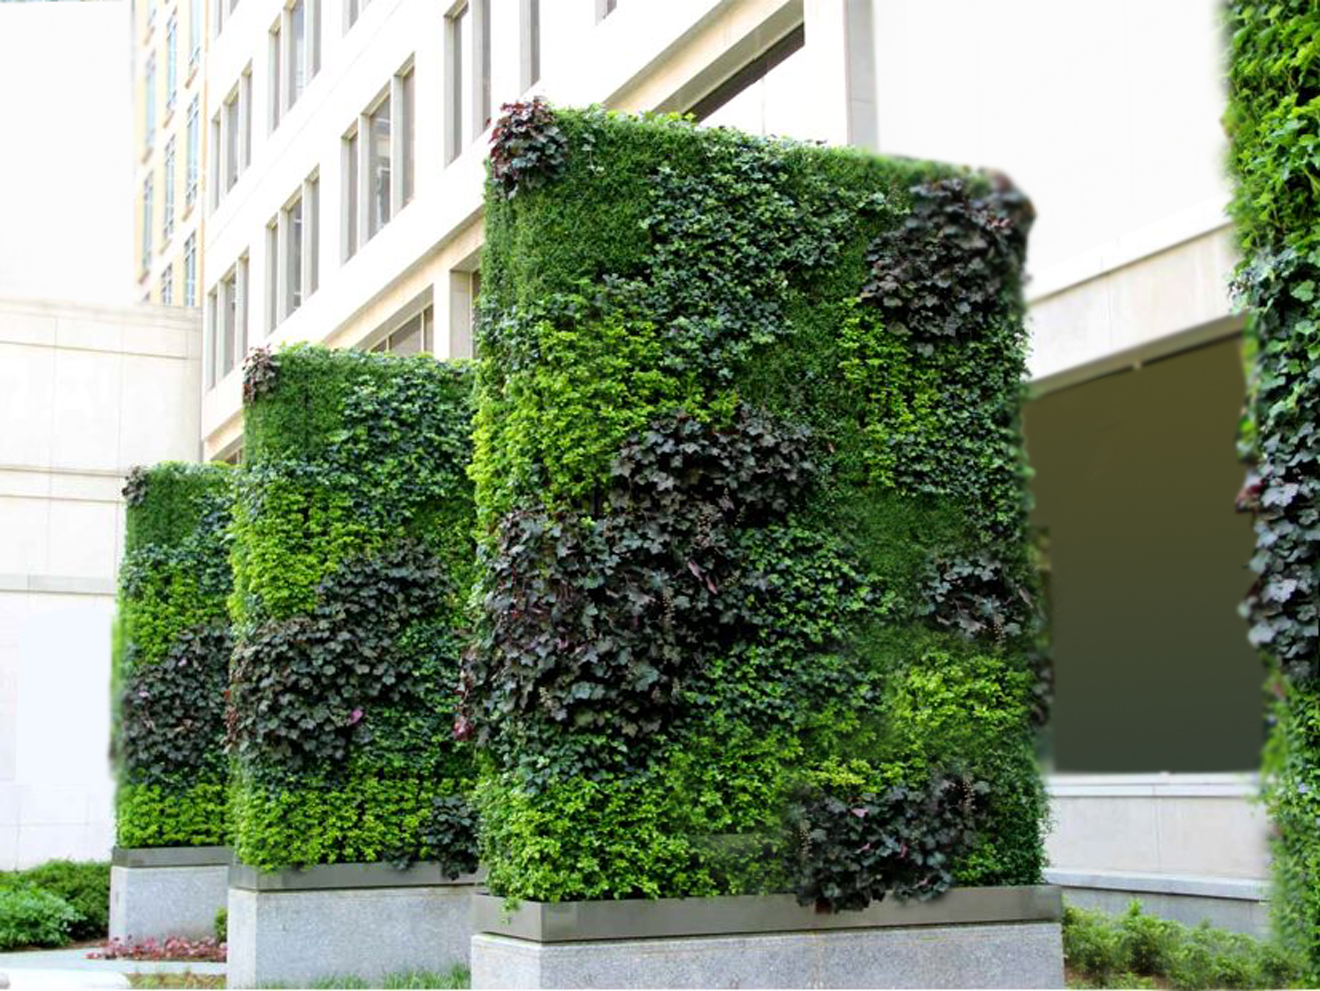 World class green wall vertical garden by technic garden Green walls vertical planting systems